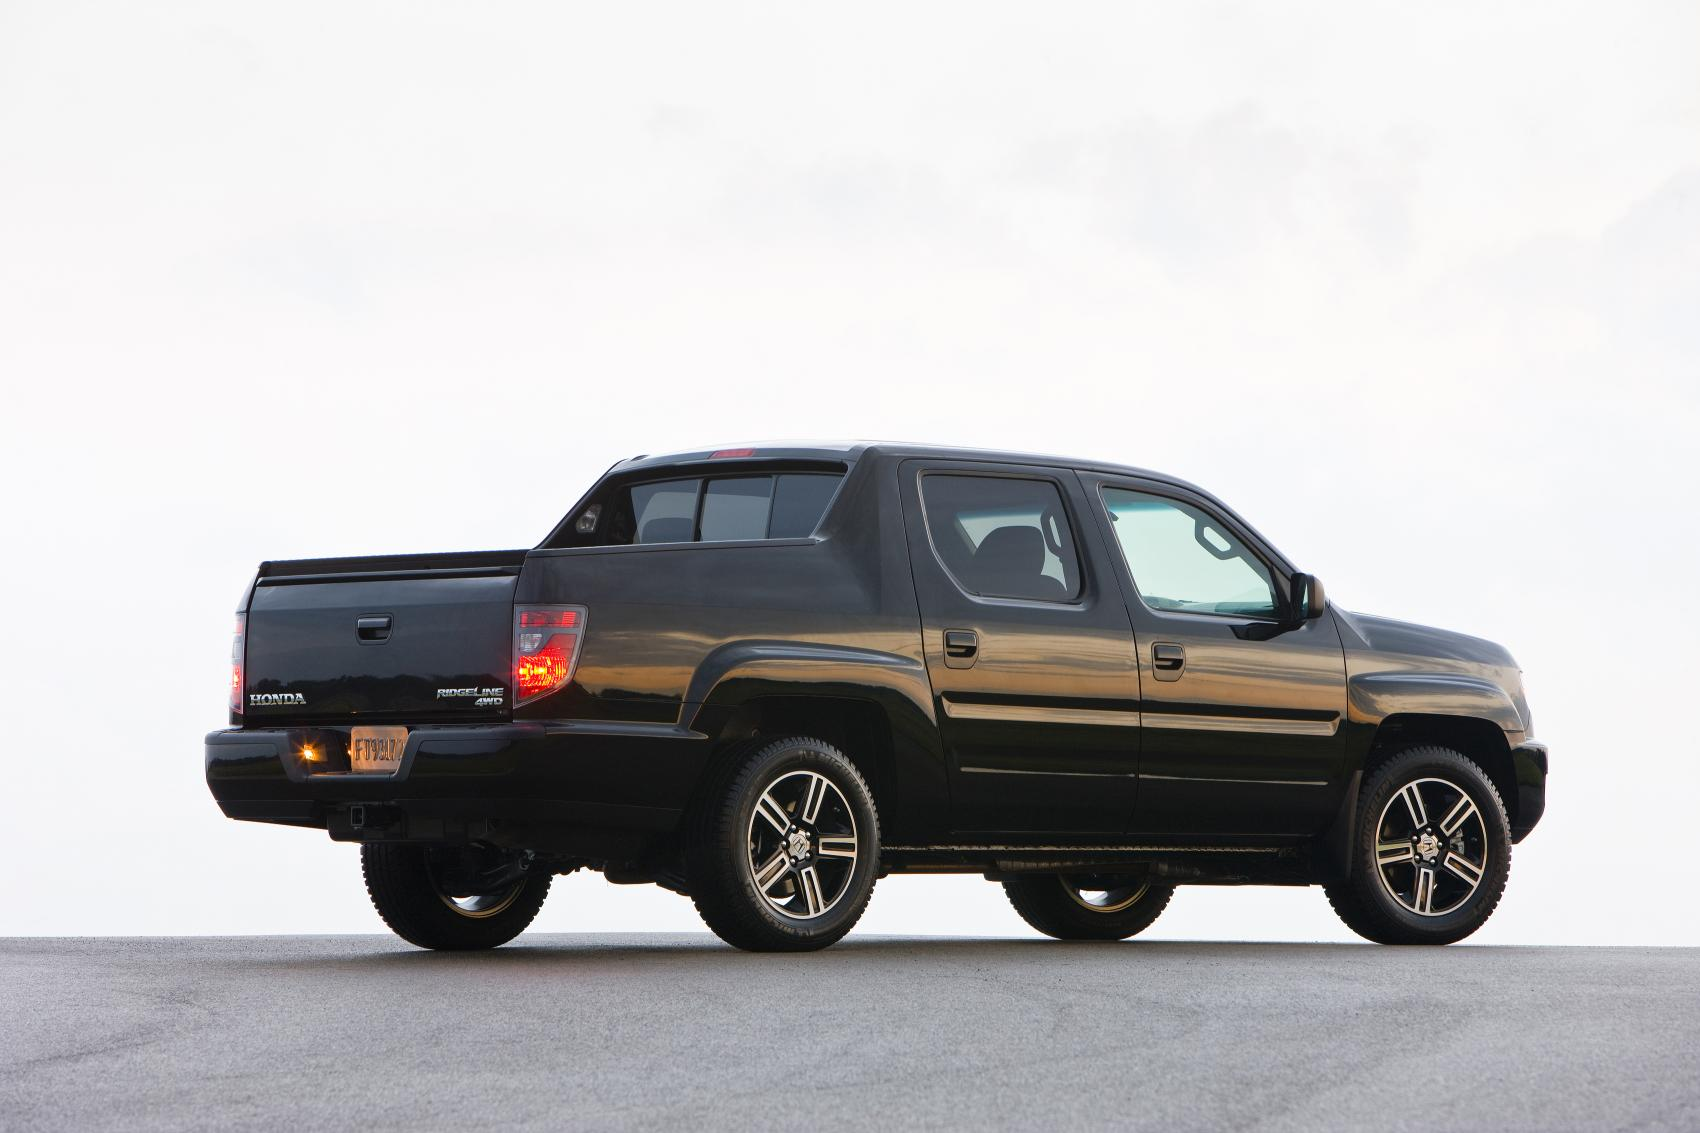 Toyota Tacoma Evolution >> 2014 Honda Ridgeline Pricing, New Special Edition Model Announced - autoevolution